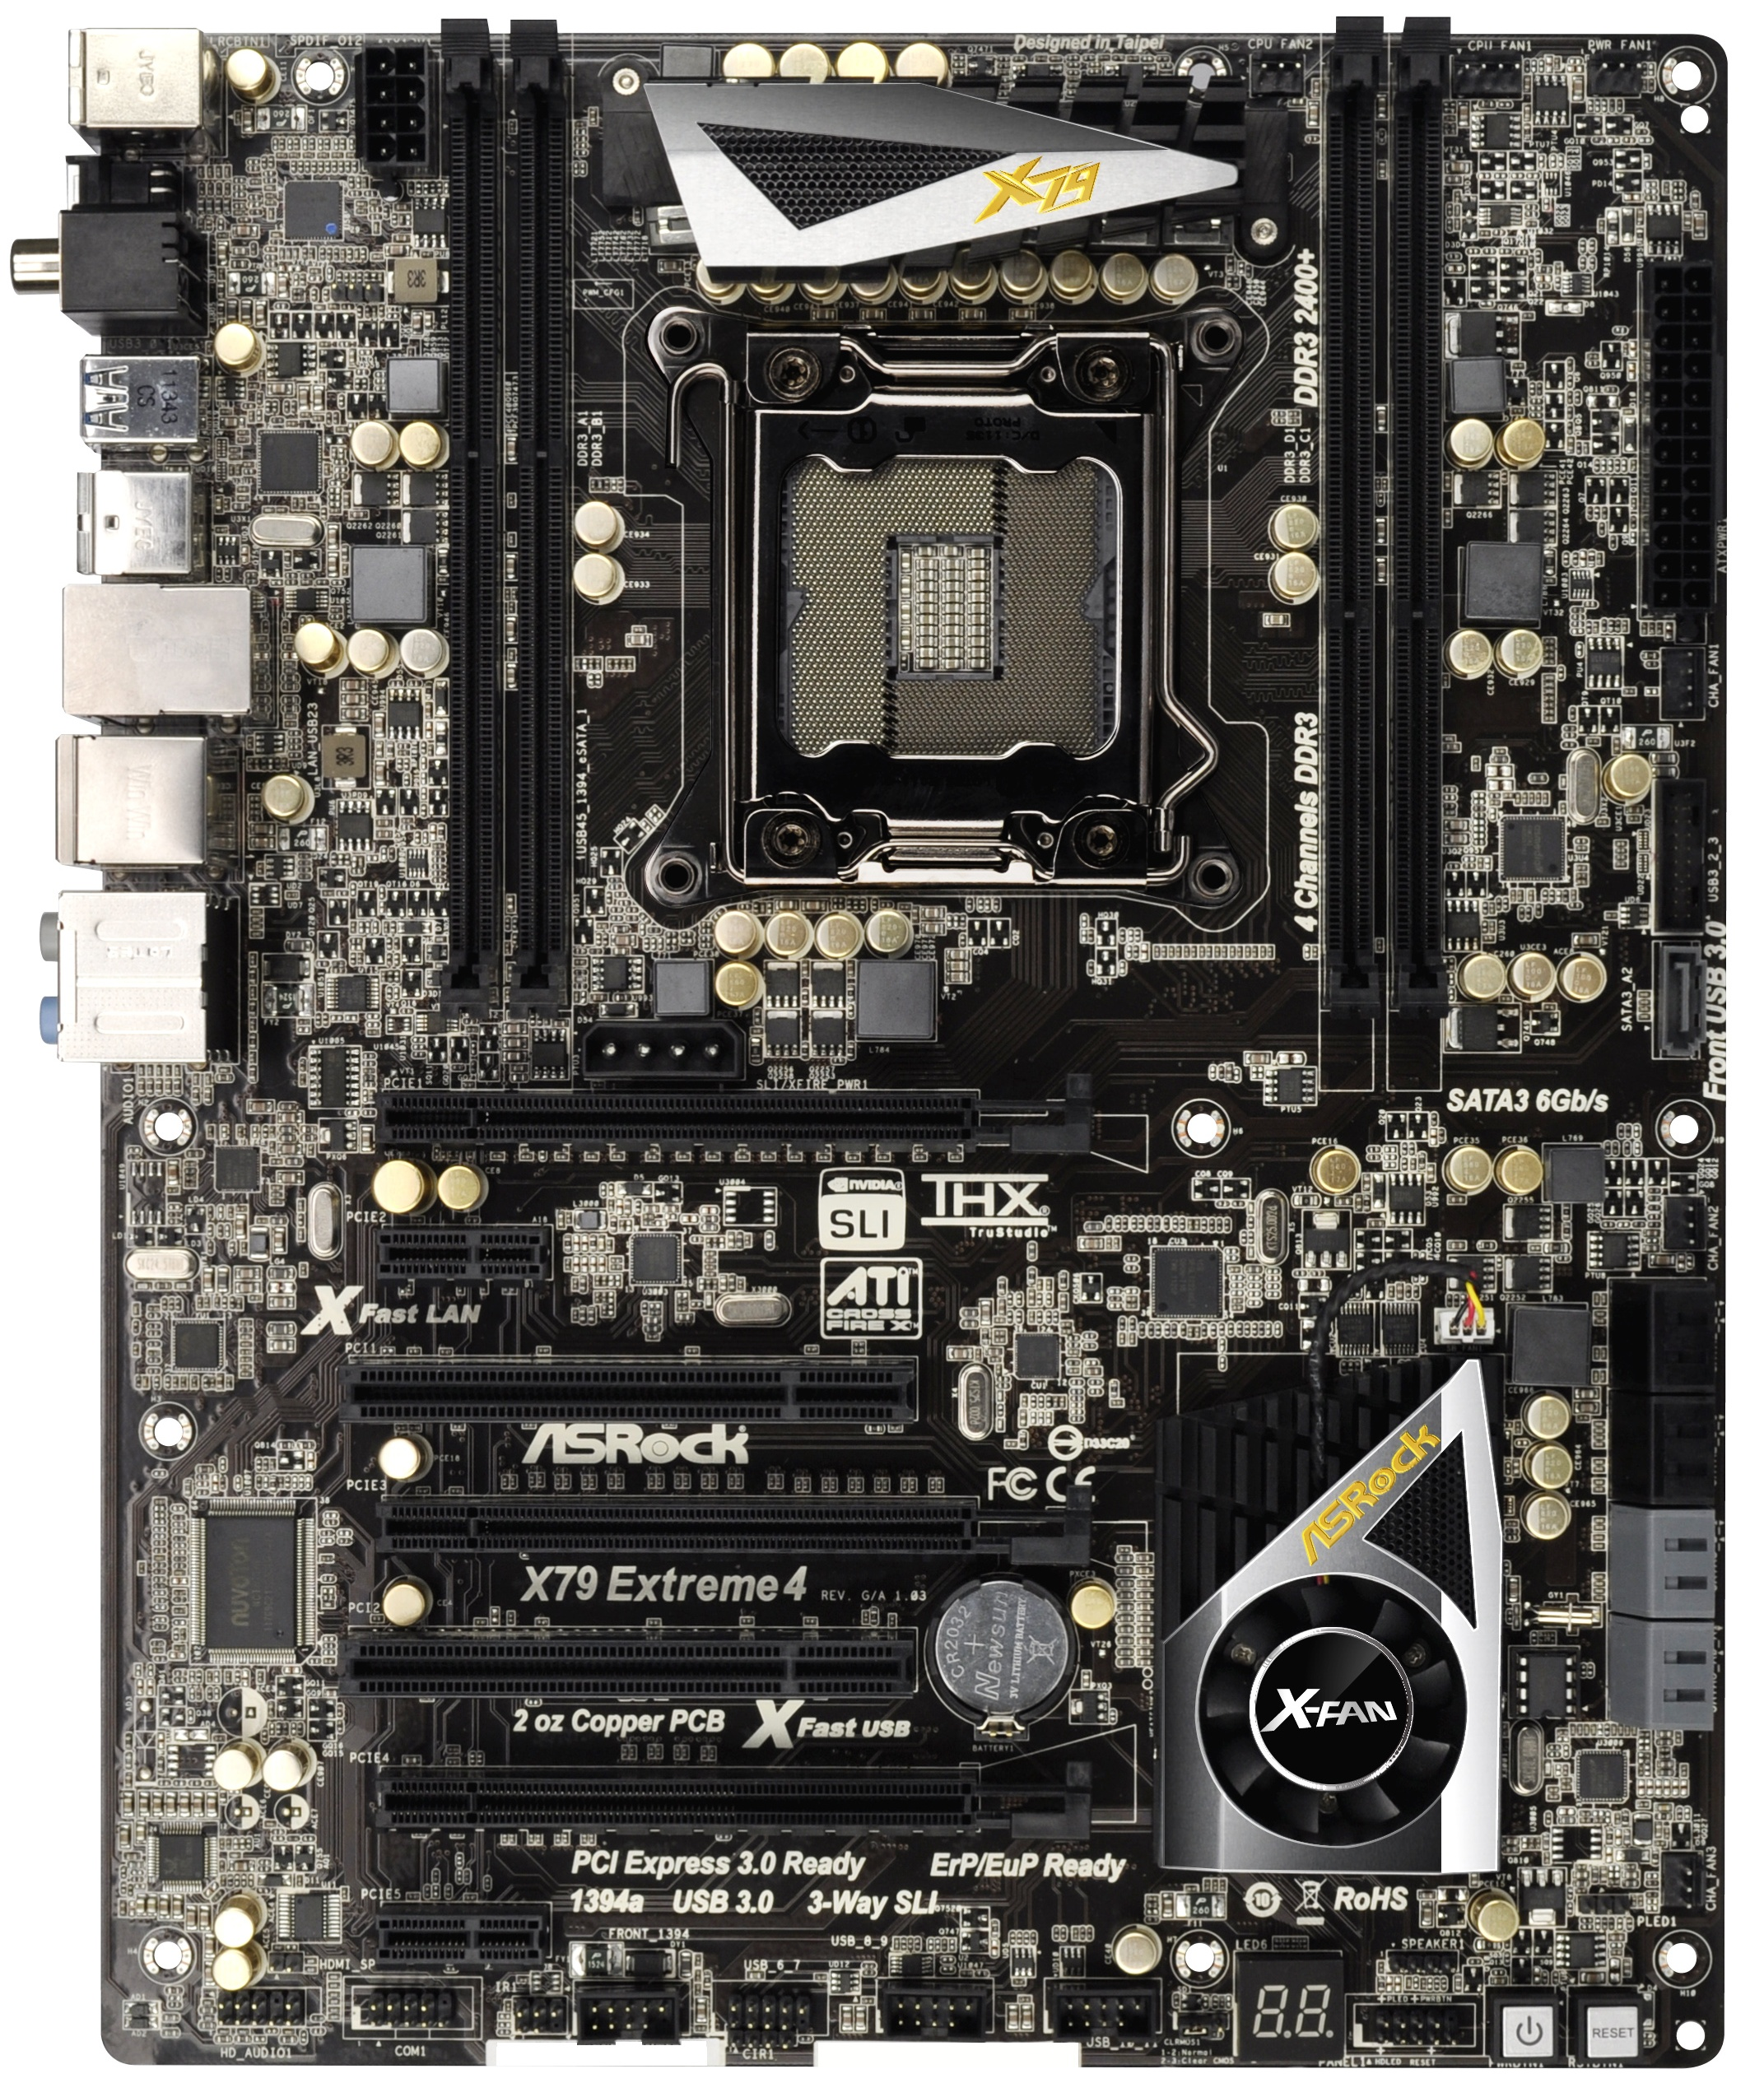 ASROCK X79 EXTREME4-M MOTHERBOARD DRIVERS UPDATE